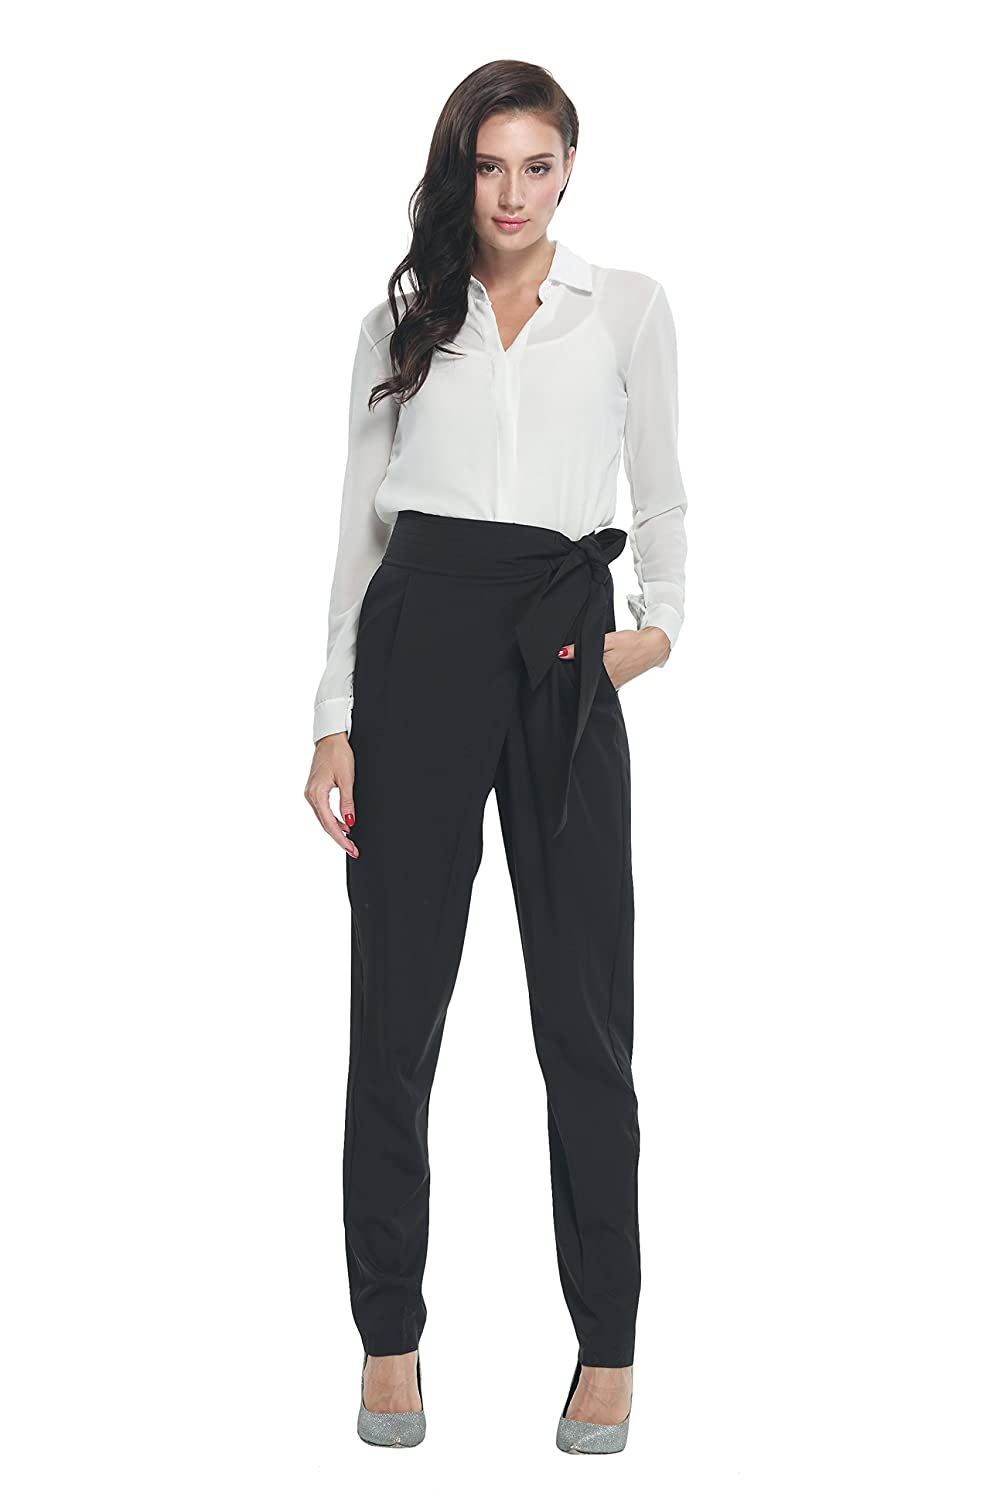 Cityoung Women's Sash Tie Detail Crossover Pants